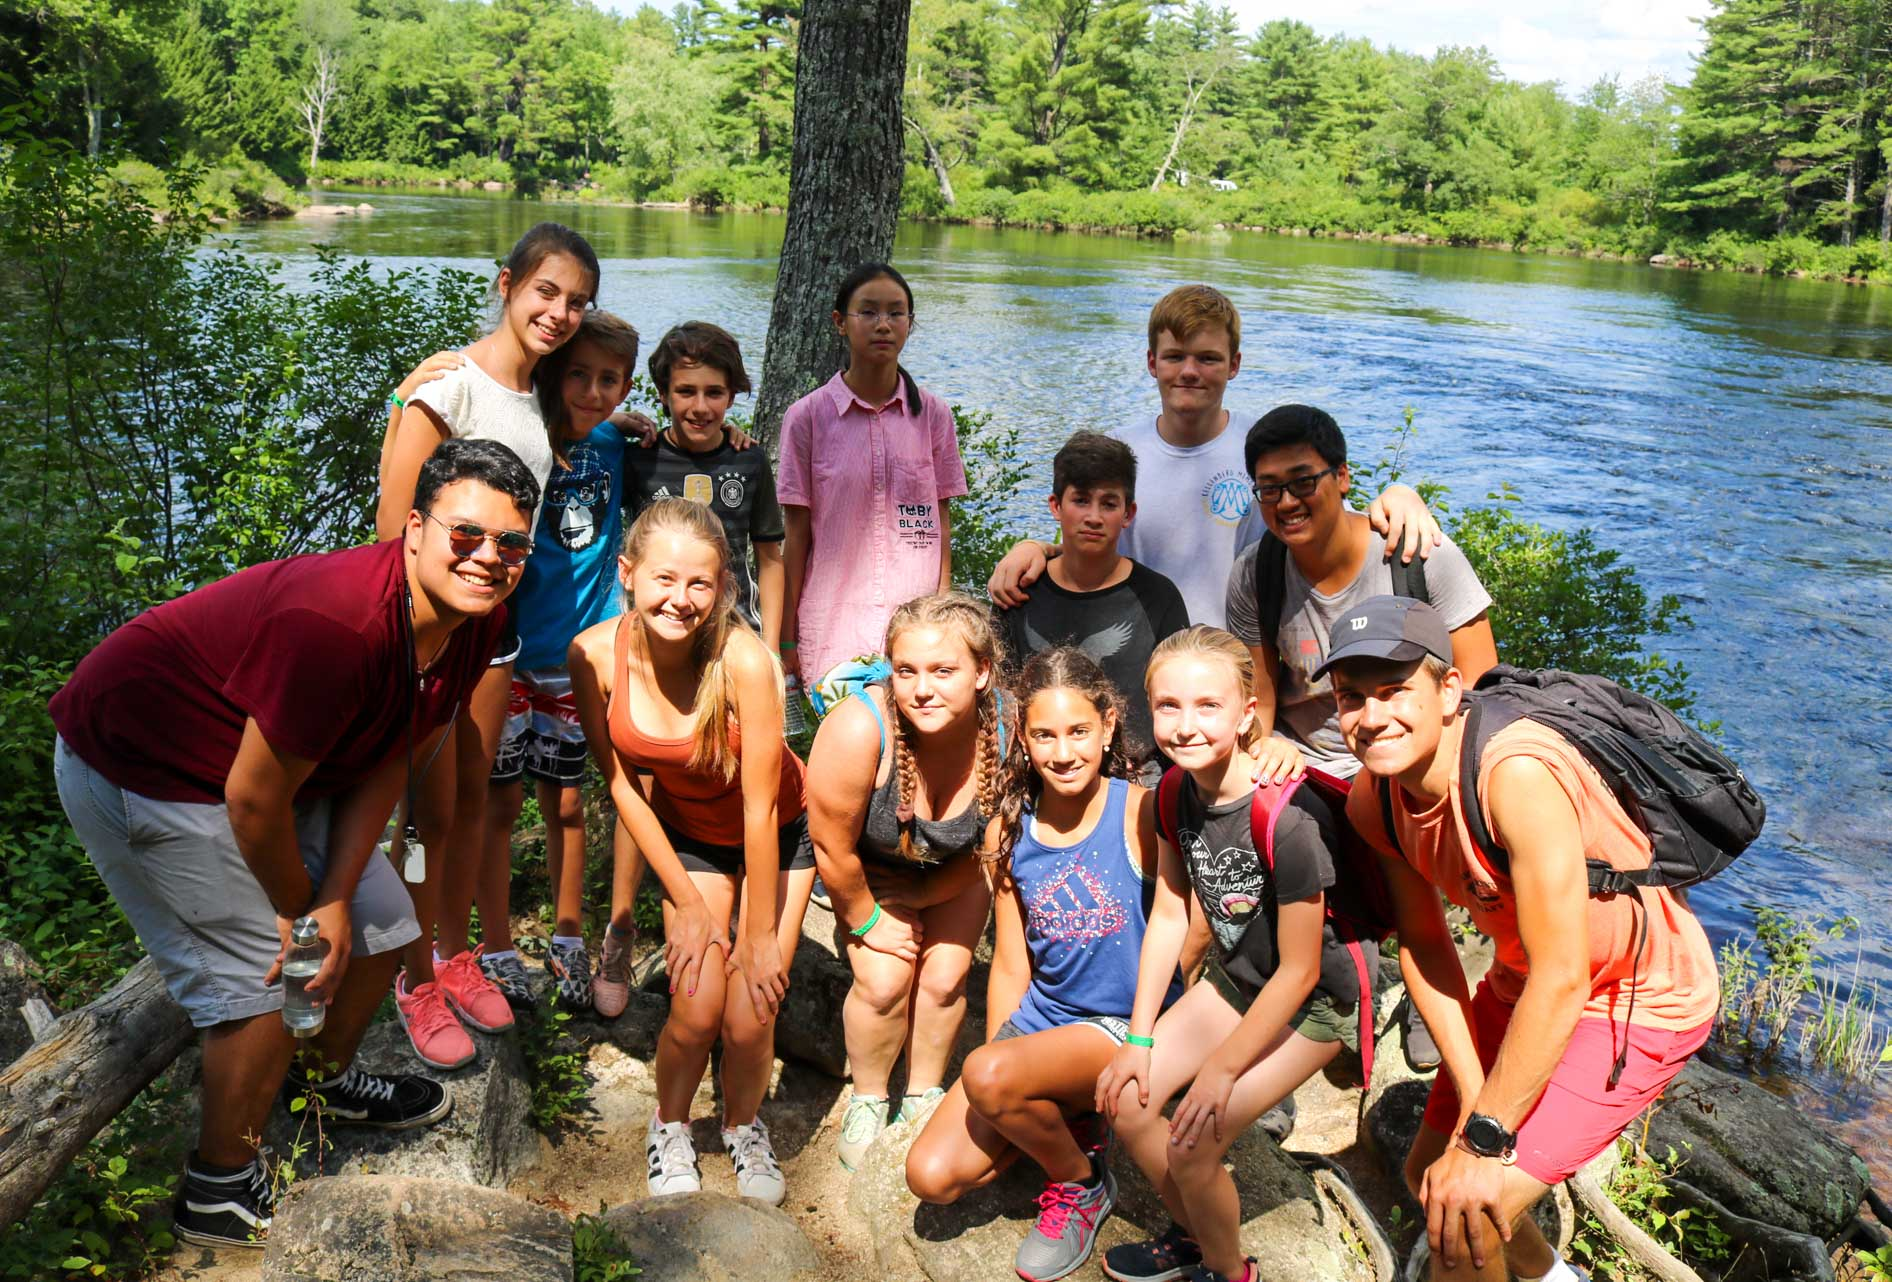 Camp hiking group poses for photo near lake